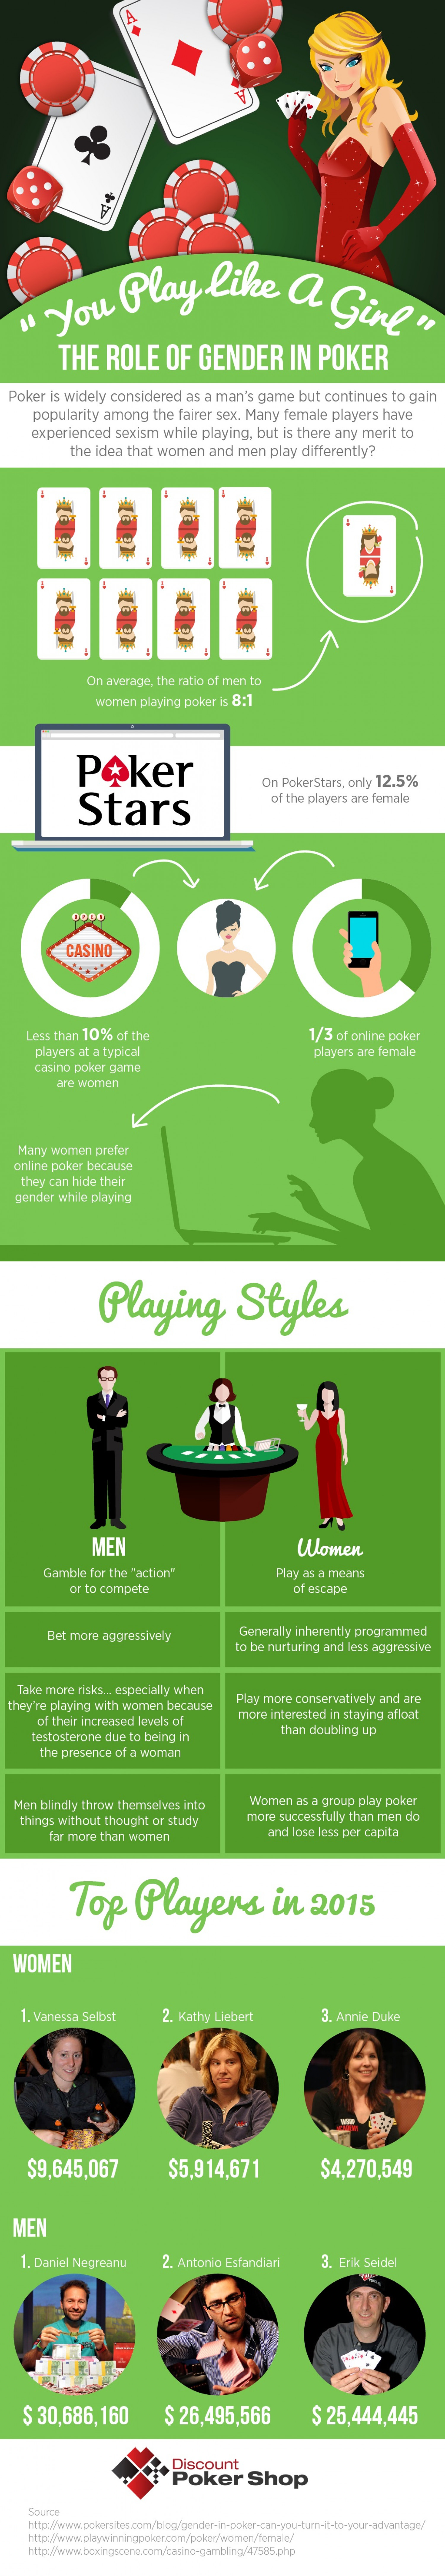 """"""" You Play like a Girl""""- The role of gender in Poker Infographic"""